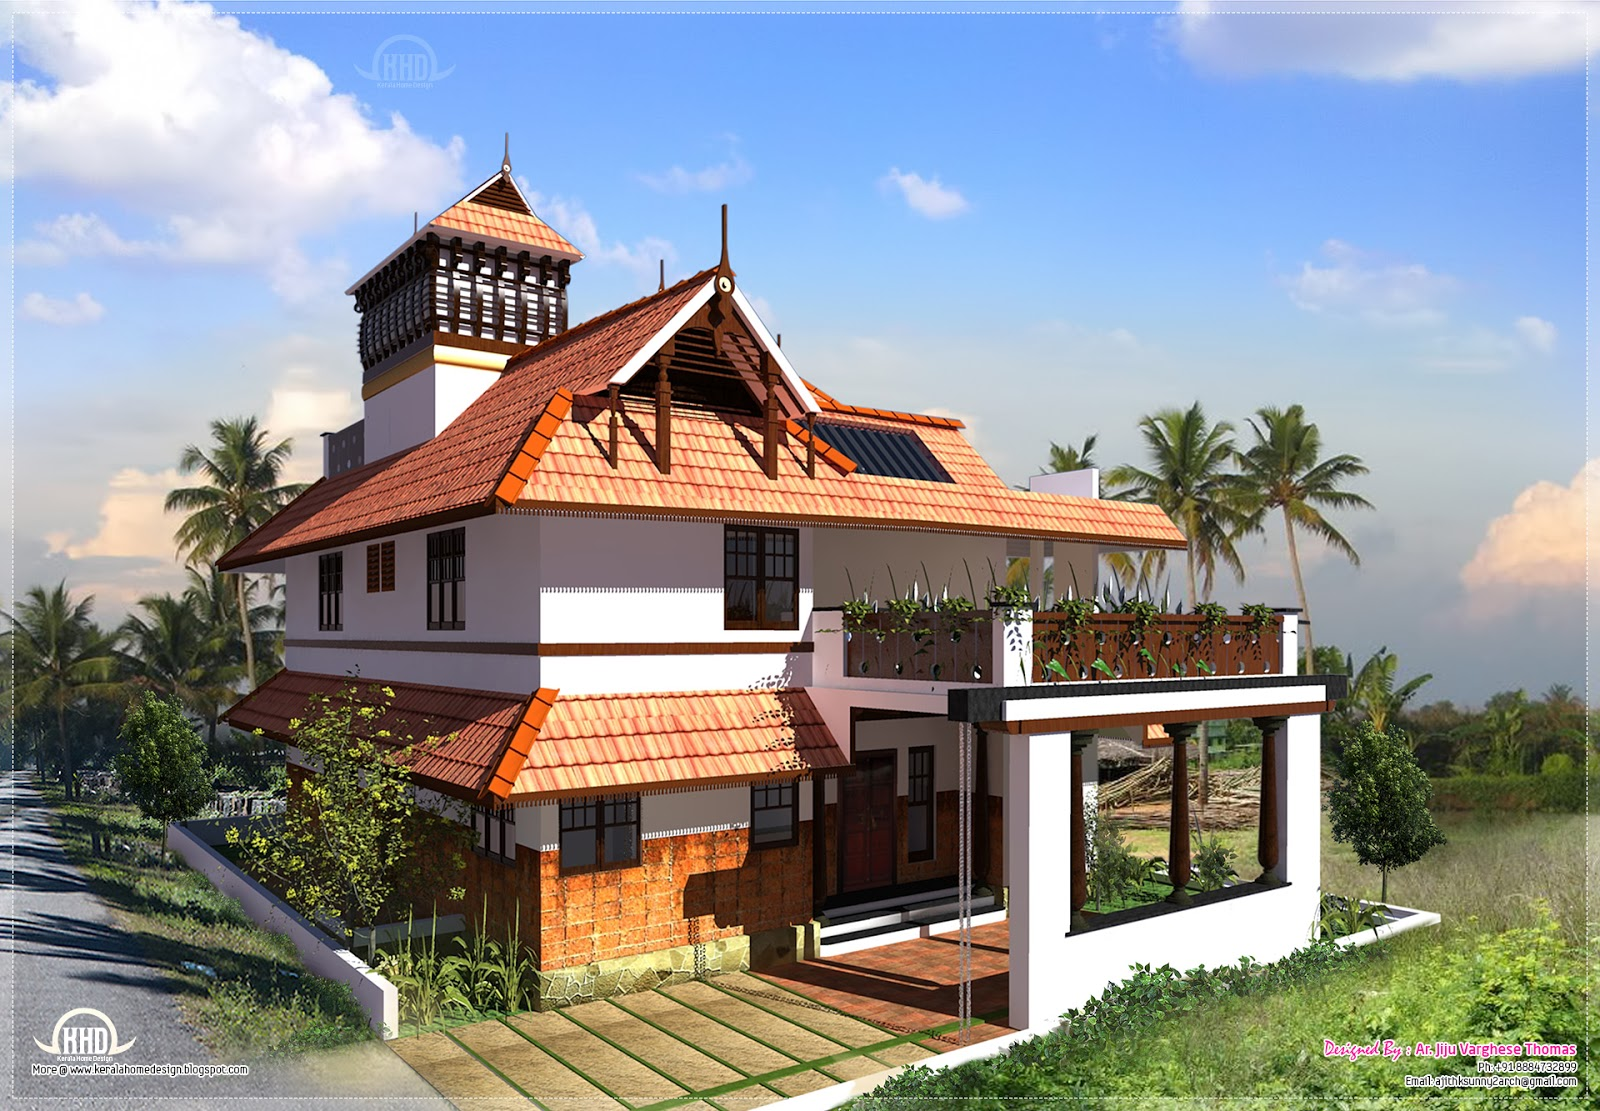 Kerala traditional house plans design joy studio design for Kerala traditional home plans with photos